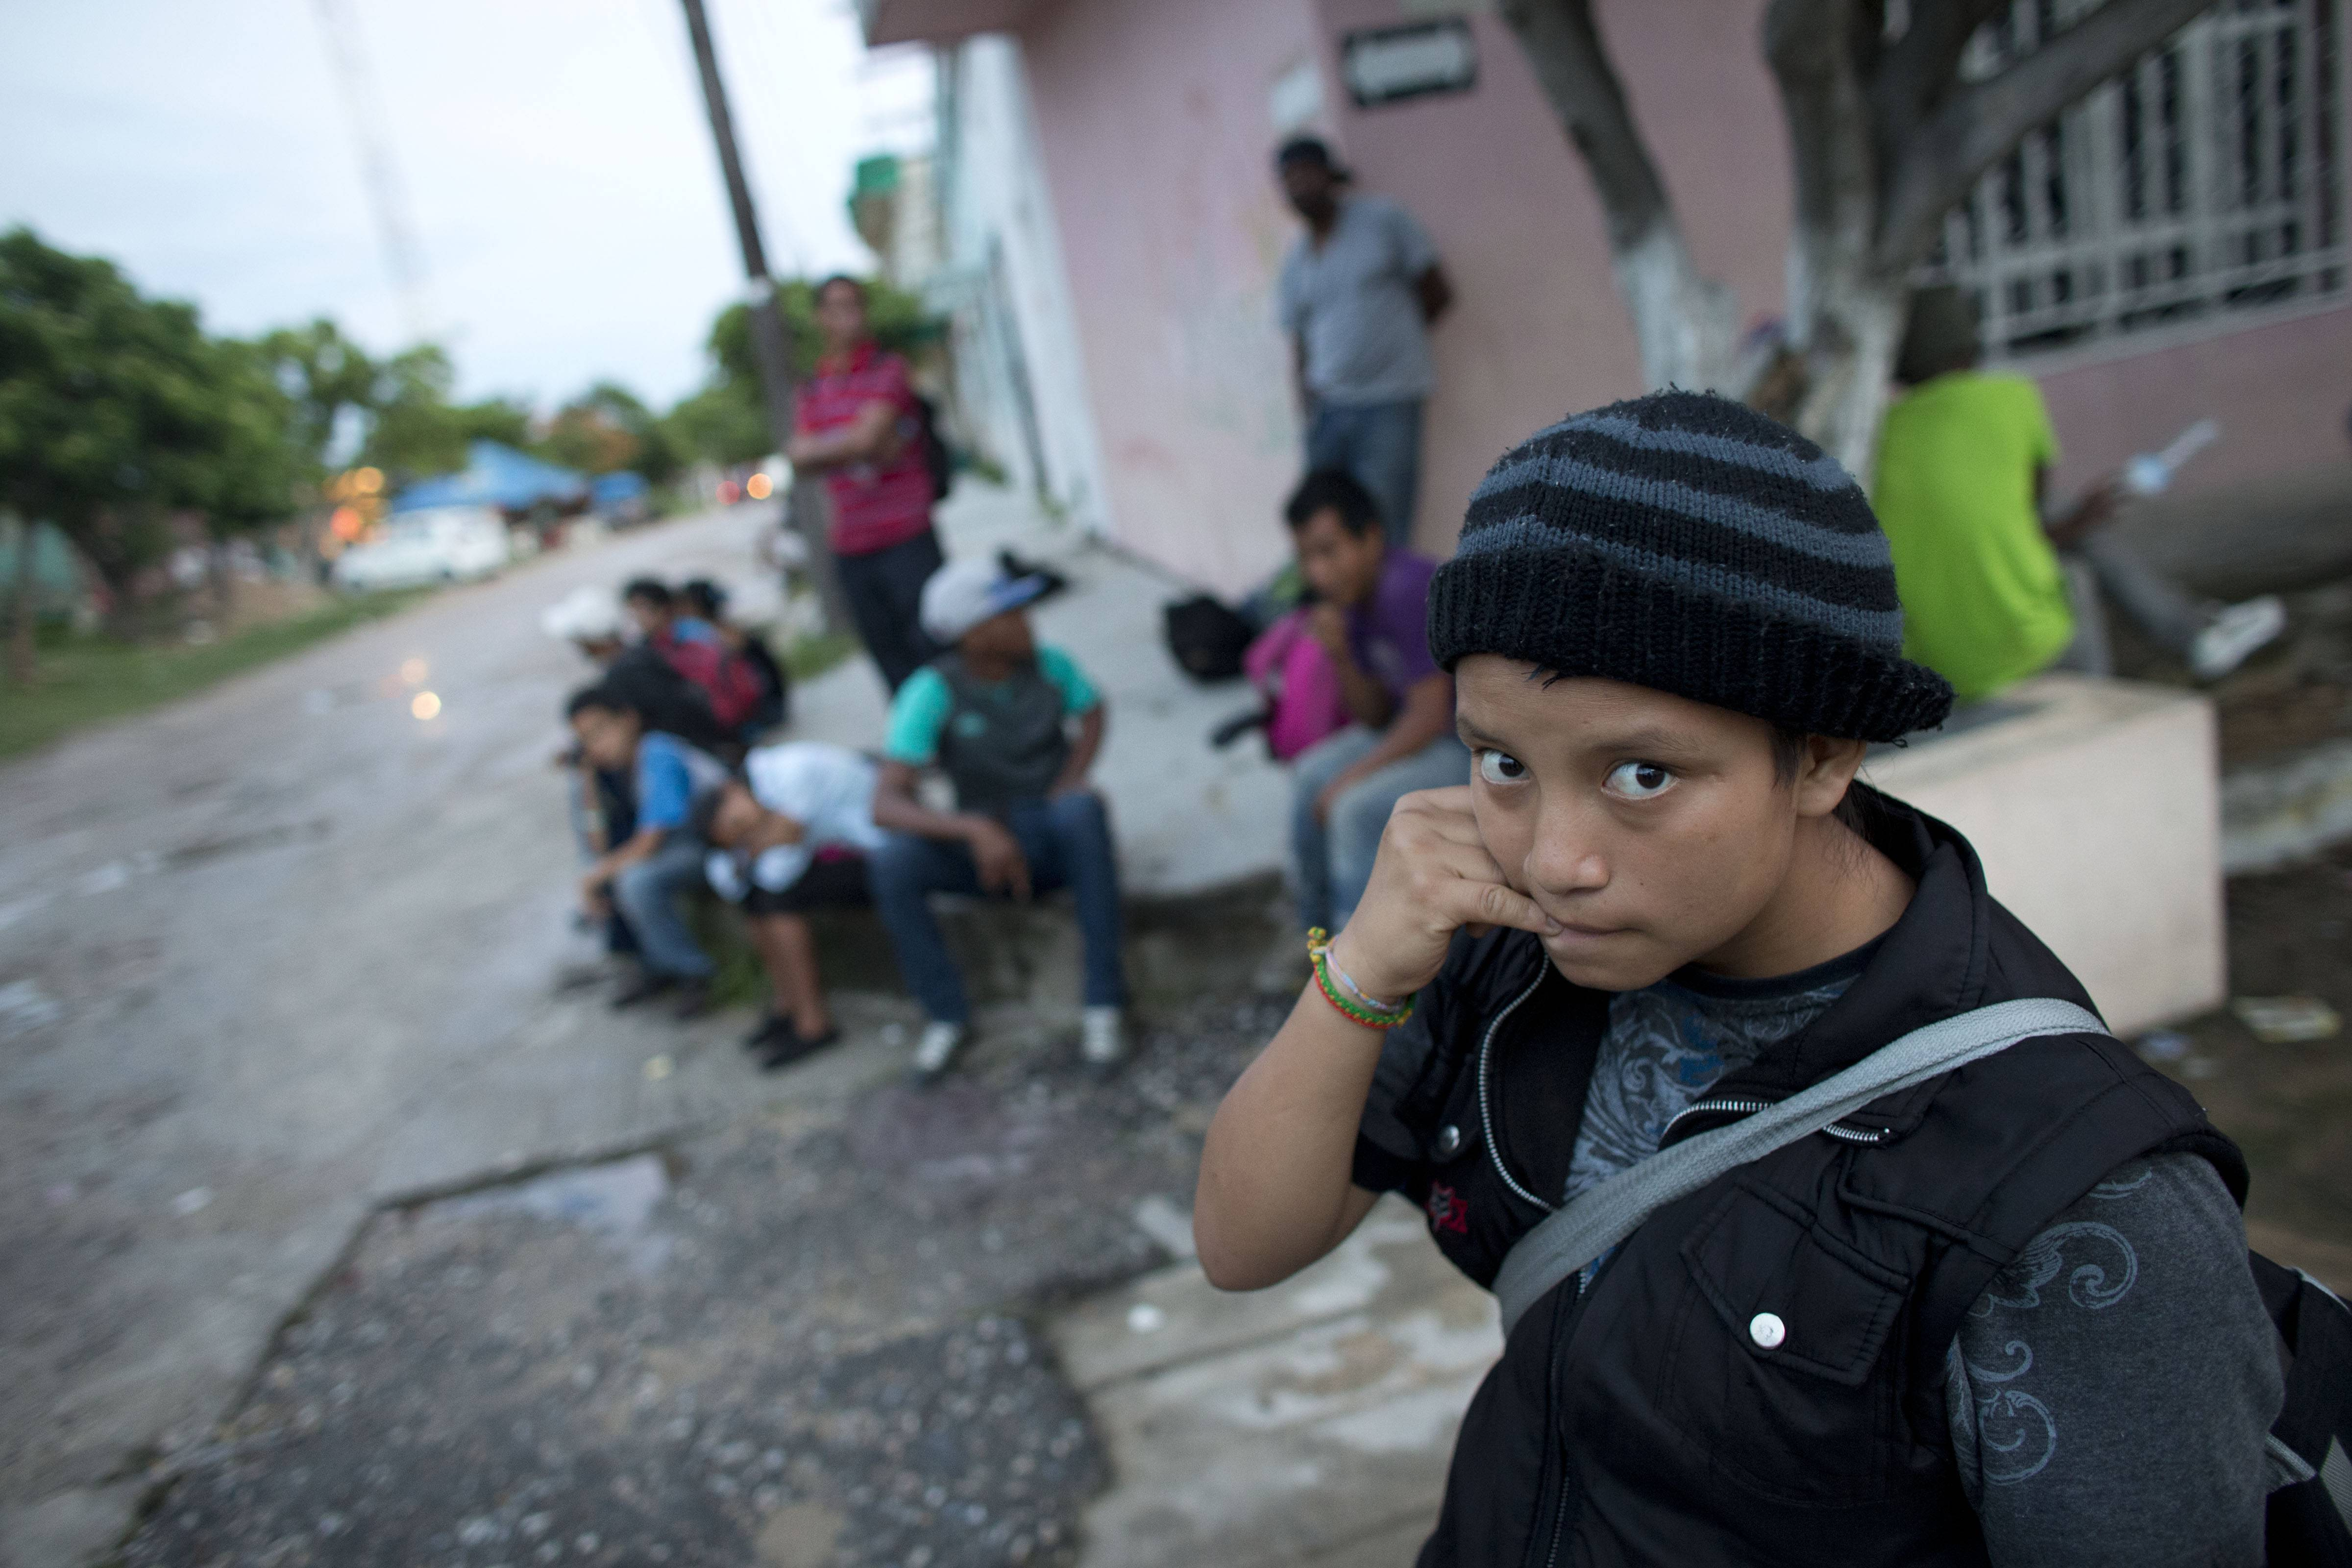 Pressure continues to mount on the federal government to treat as refugees the thousands of children traveling alone from Central America and crossing the border into the United States.